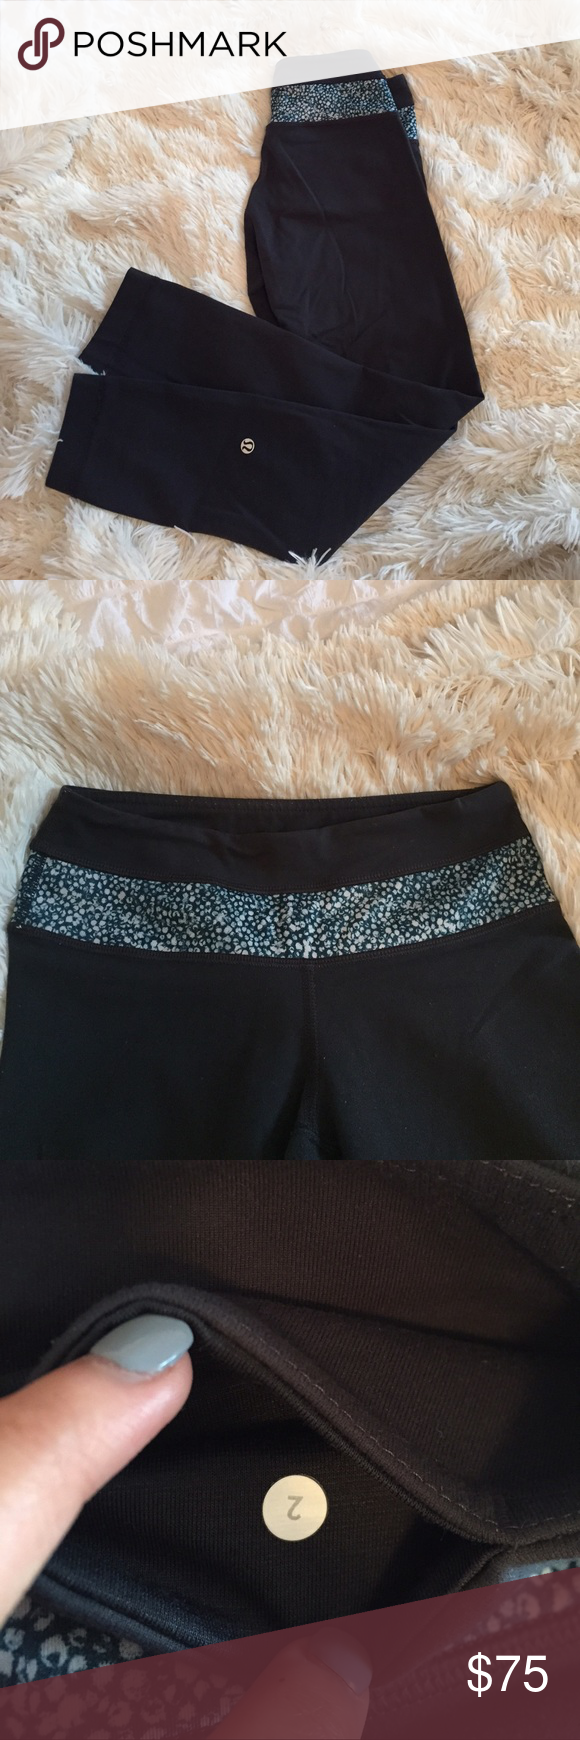 Lululemon high times leggings dark grey size 2. These are the Lululemon high times leggings in size 2 that are a dark grey color with blue detailing at the band. lululemon athletica Pants Leggings